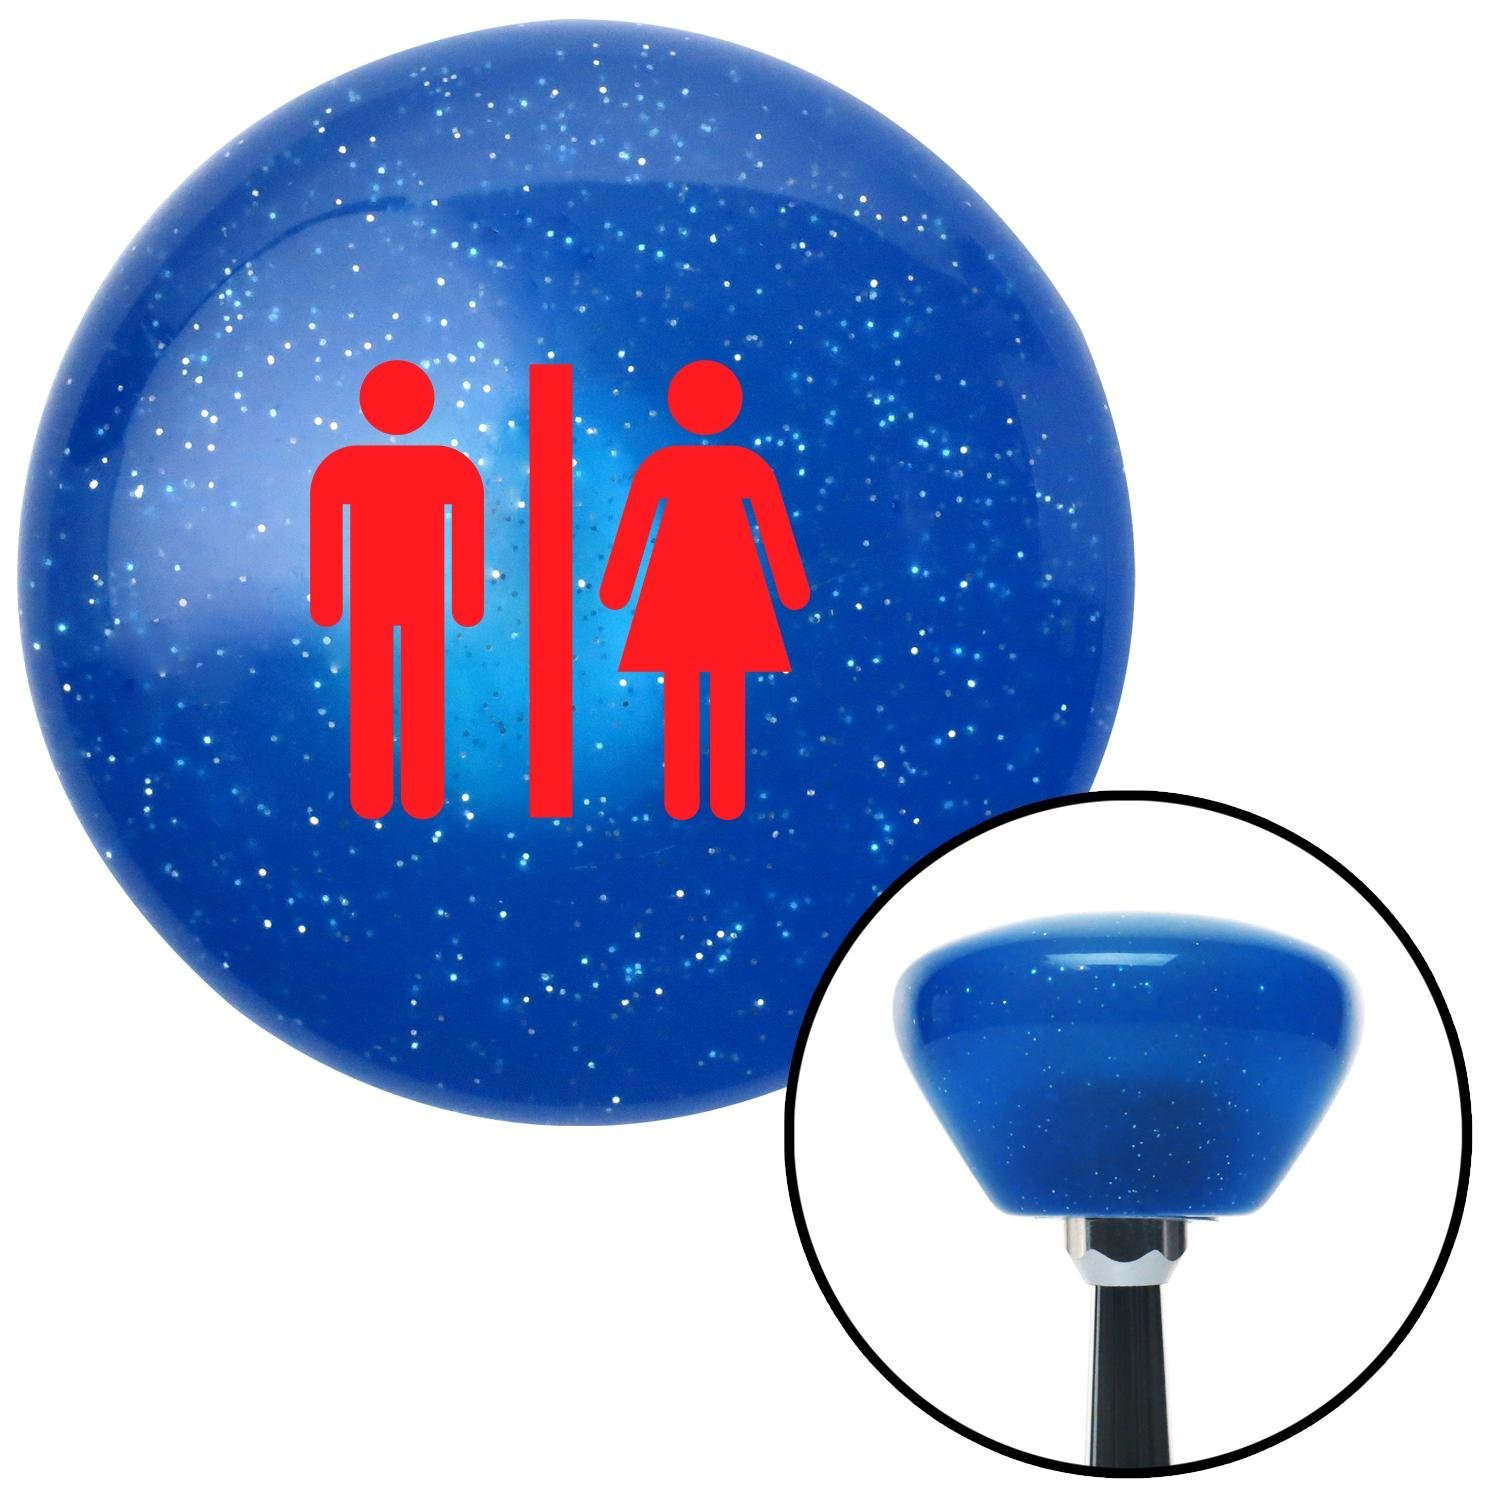 American Shifter 187207 Blue Retro Metal Flake Shift Knob with M16 x 1.5 Insert Red Man /& Woman